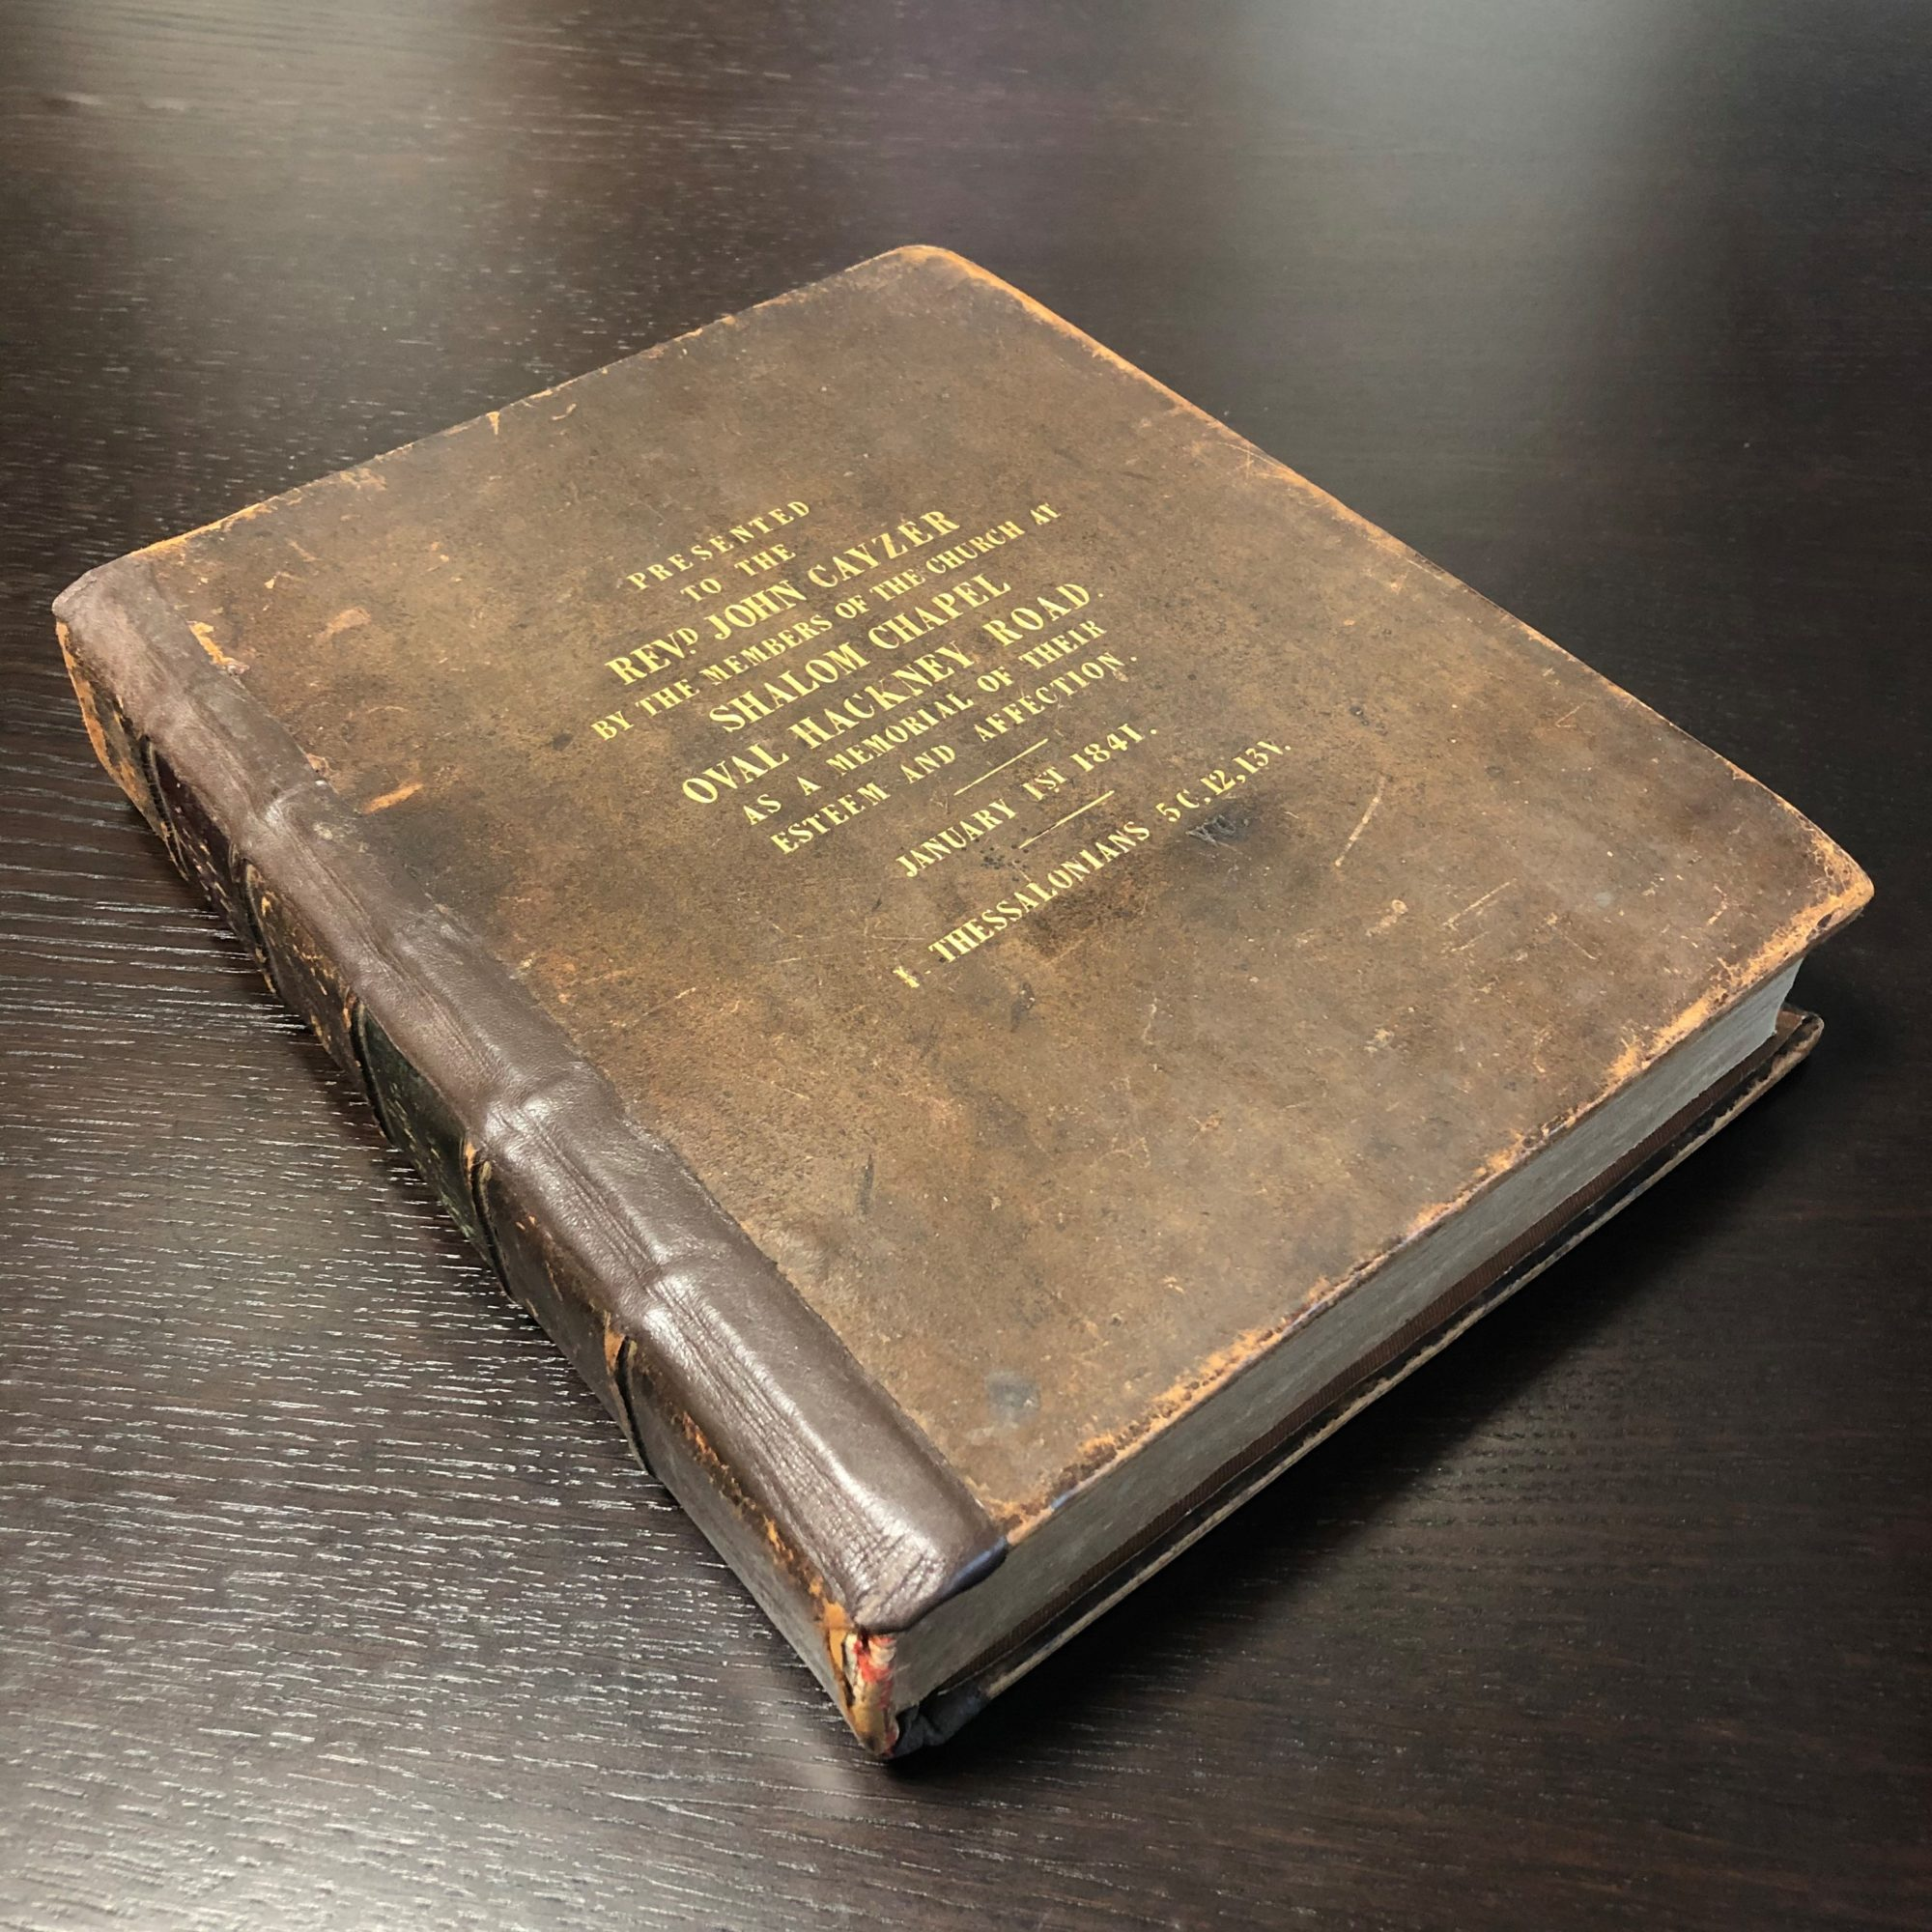 Colour photograph of Scott's Bible at The Cayzer Family Archive